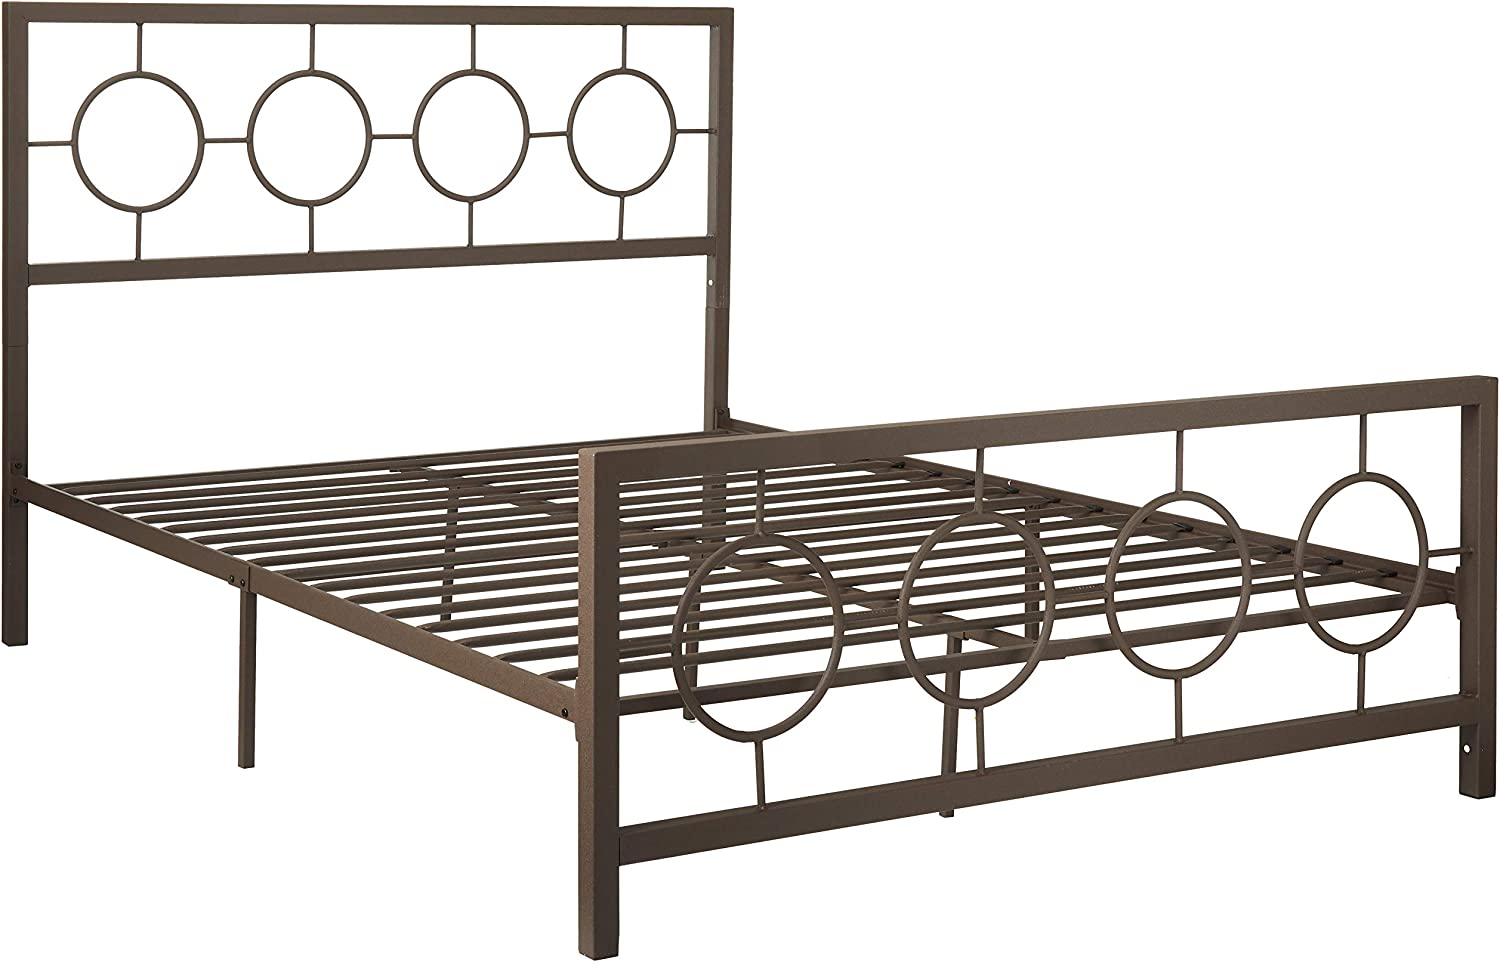 Christopher Knight Home Doris Queen-Size Geometric Platform Bed Frame, Iron, Modern, Low-Profile, Hammered Copper